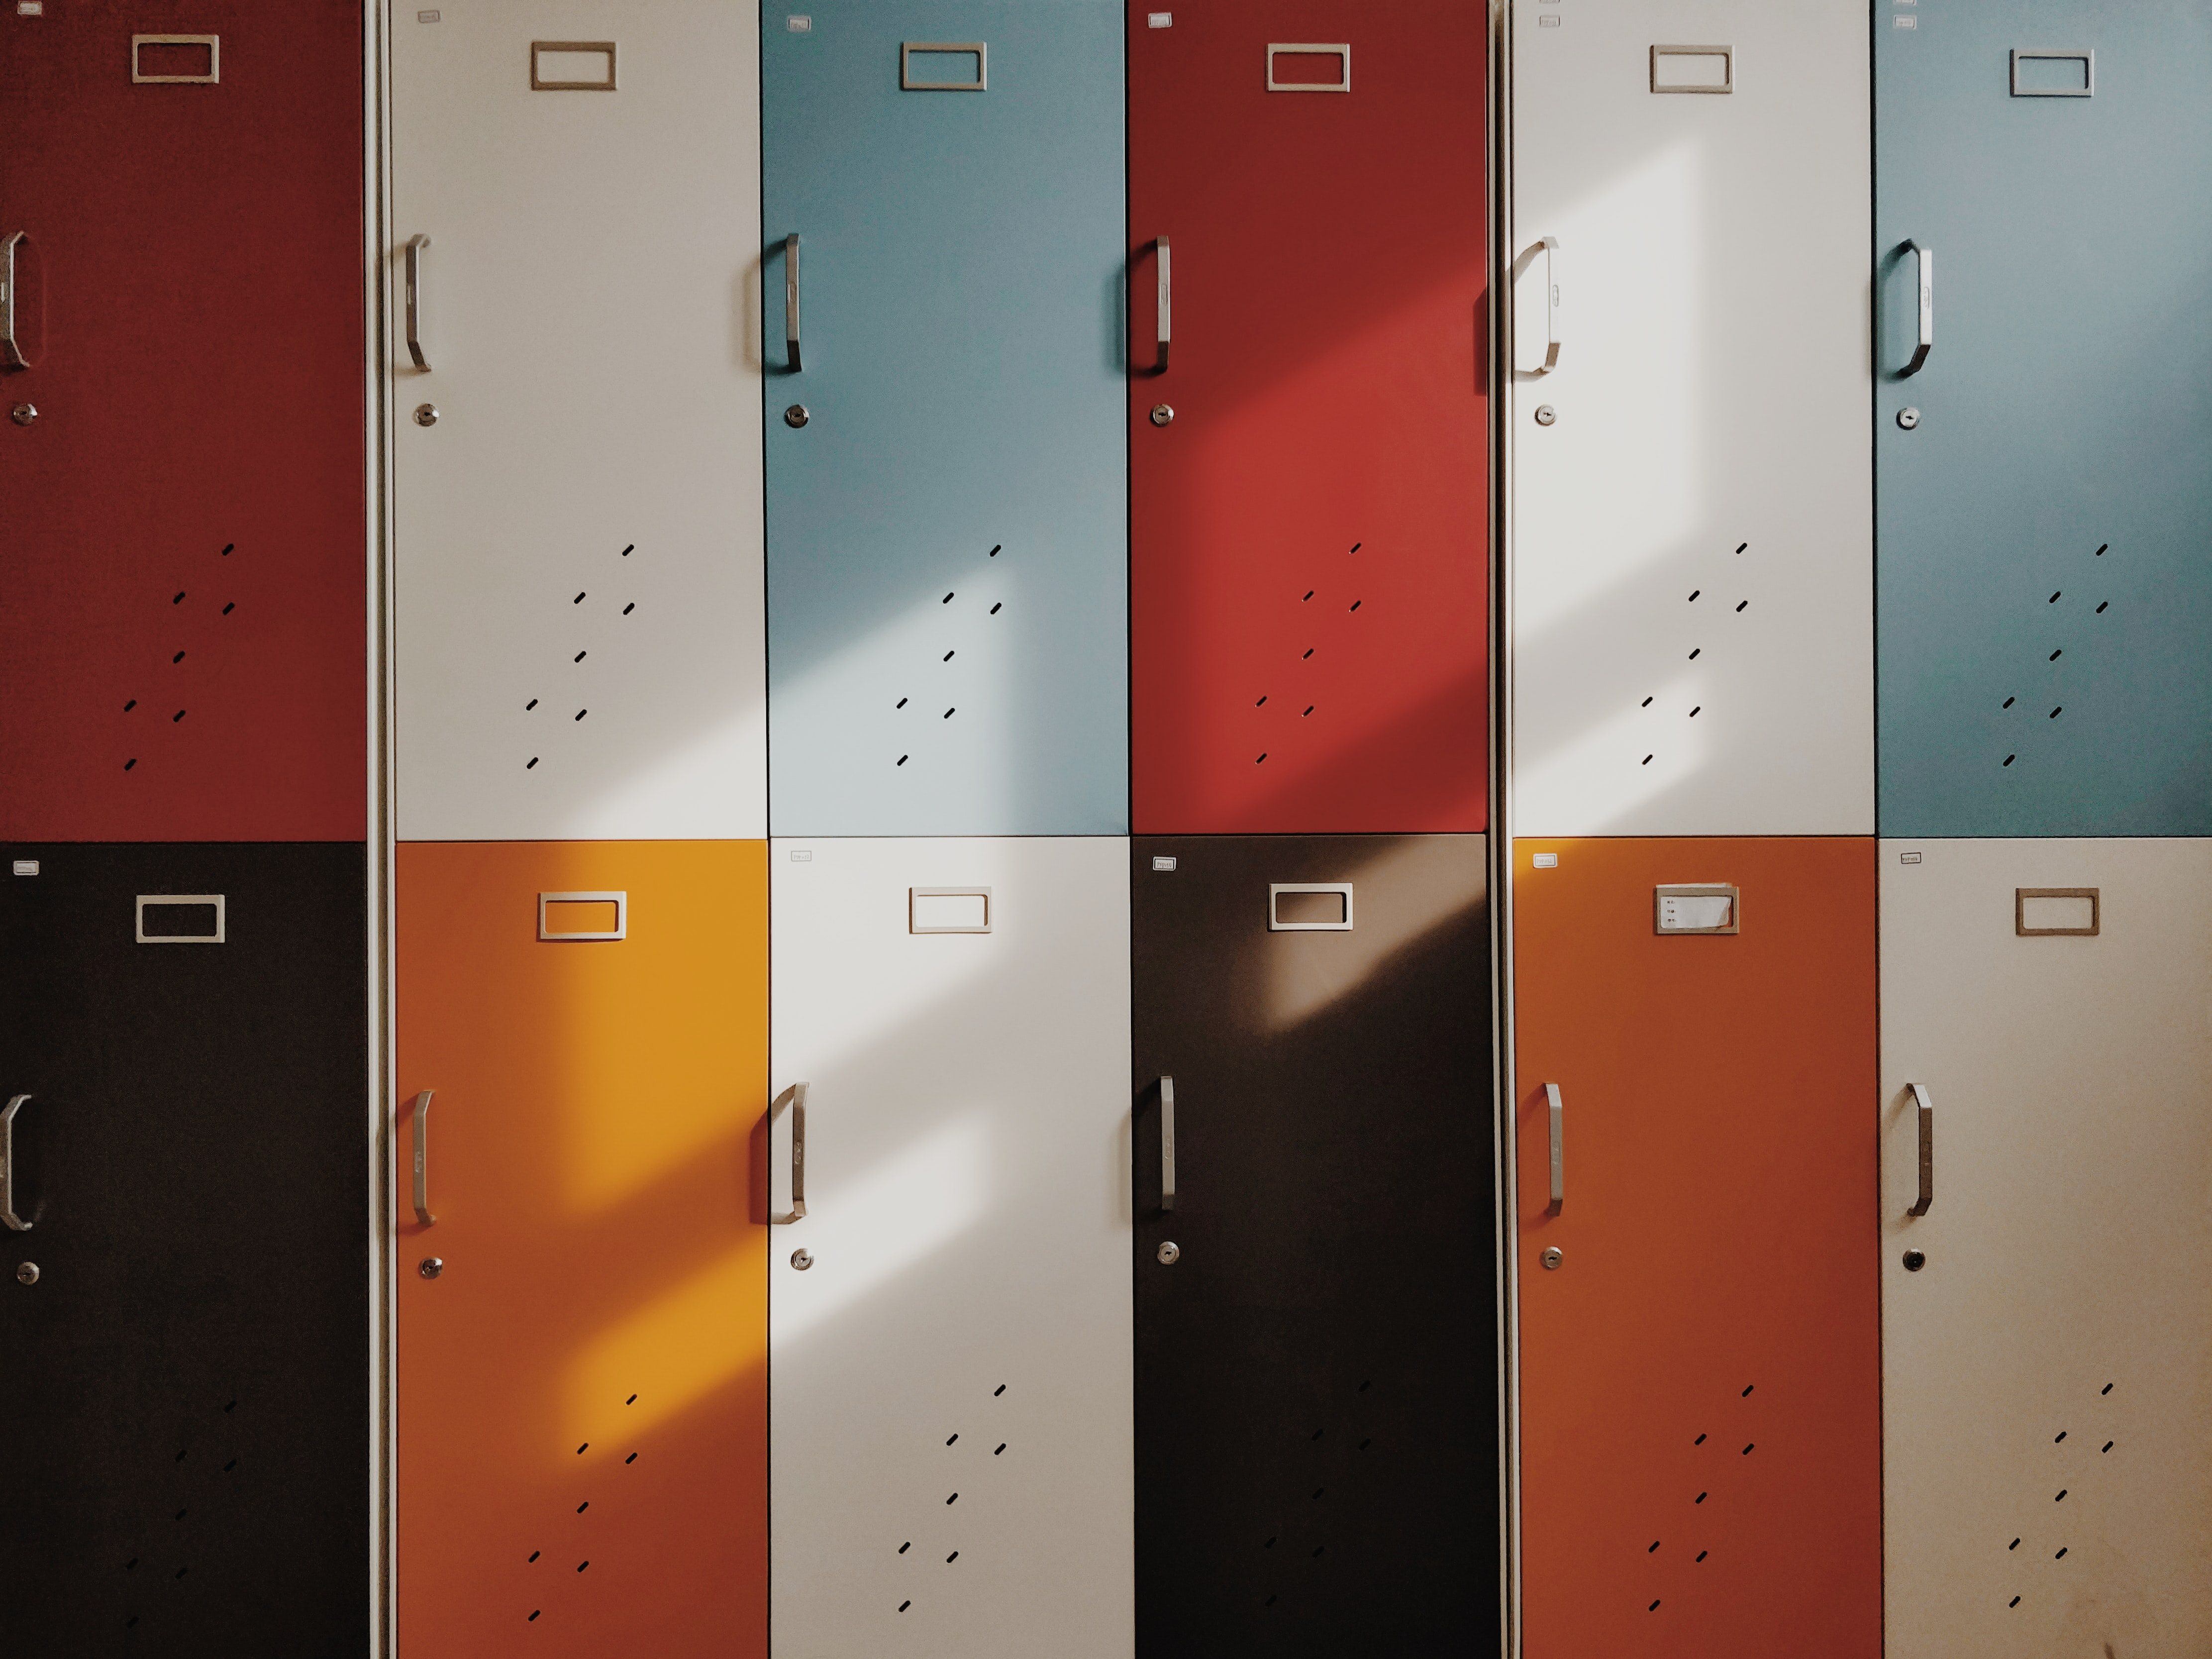 Lockers_moren-hsu-unsplash